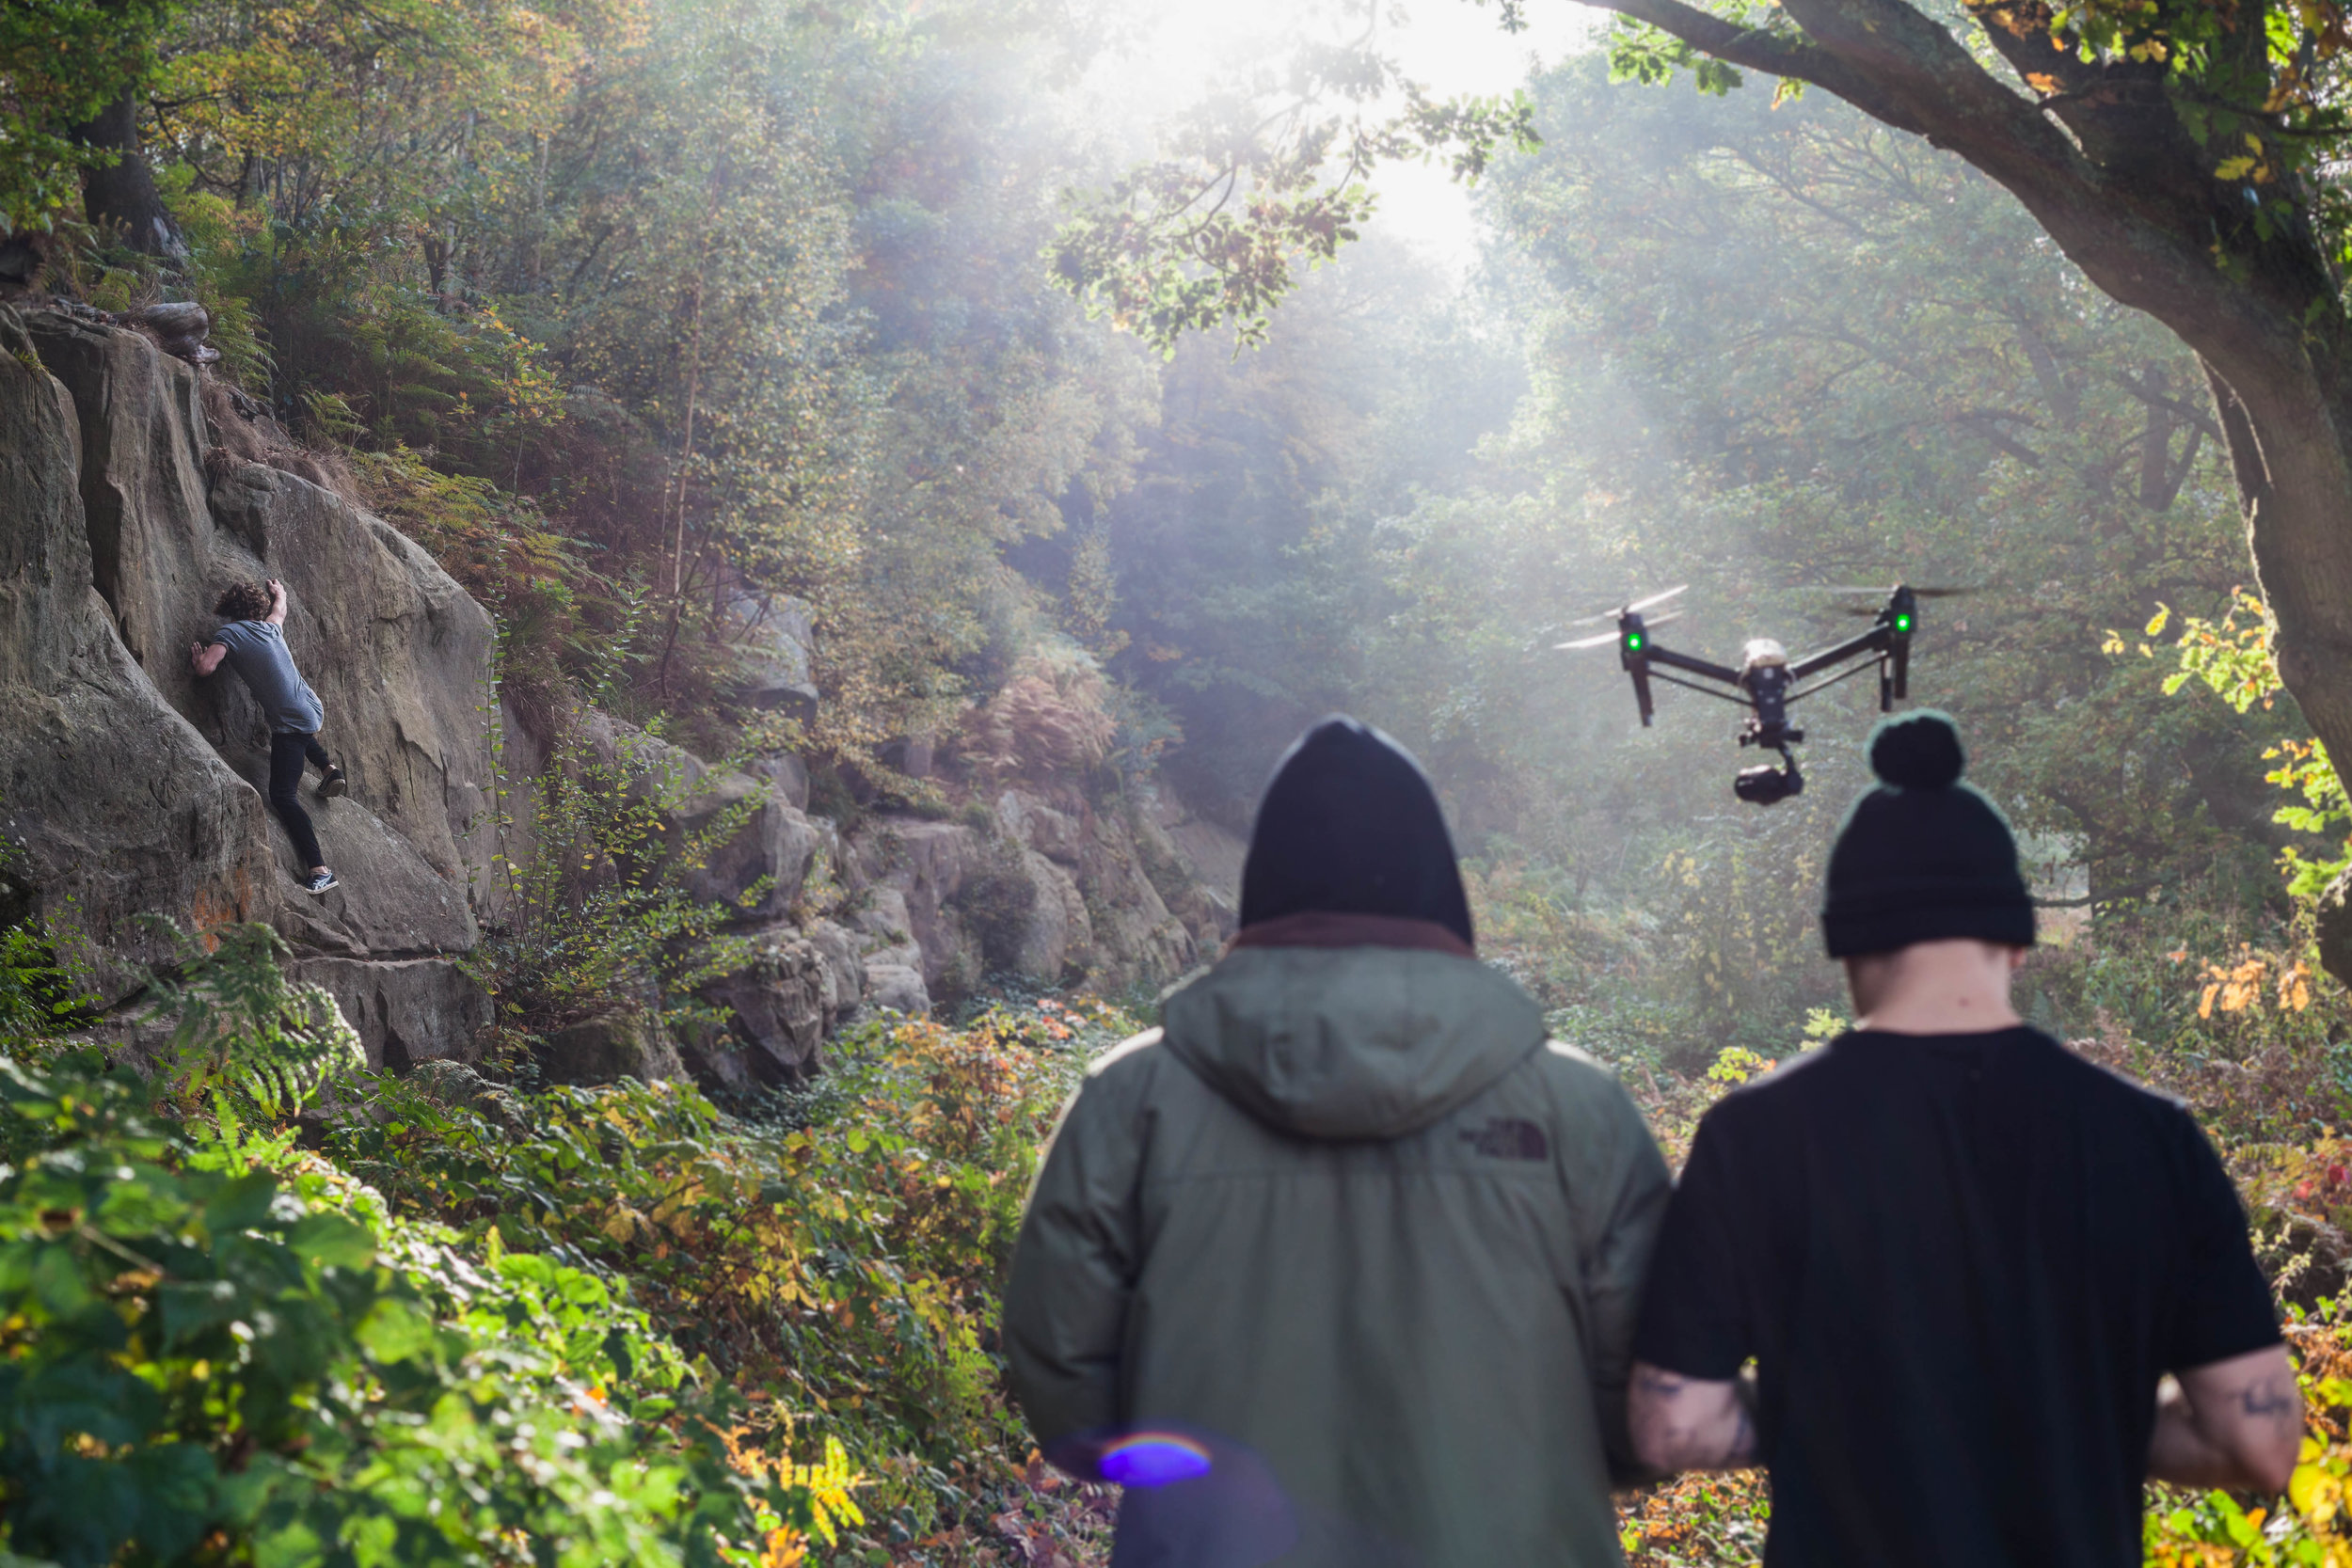 VIDEO: DRONE - This category always gets overlooked but never fails to deliver incredible results from those who enter! Grab a drone and get creative!